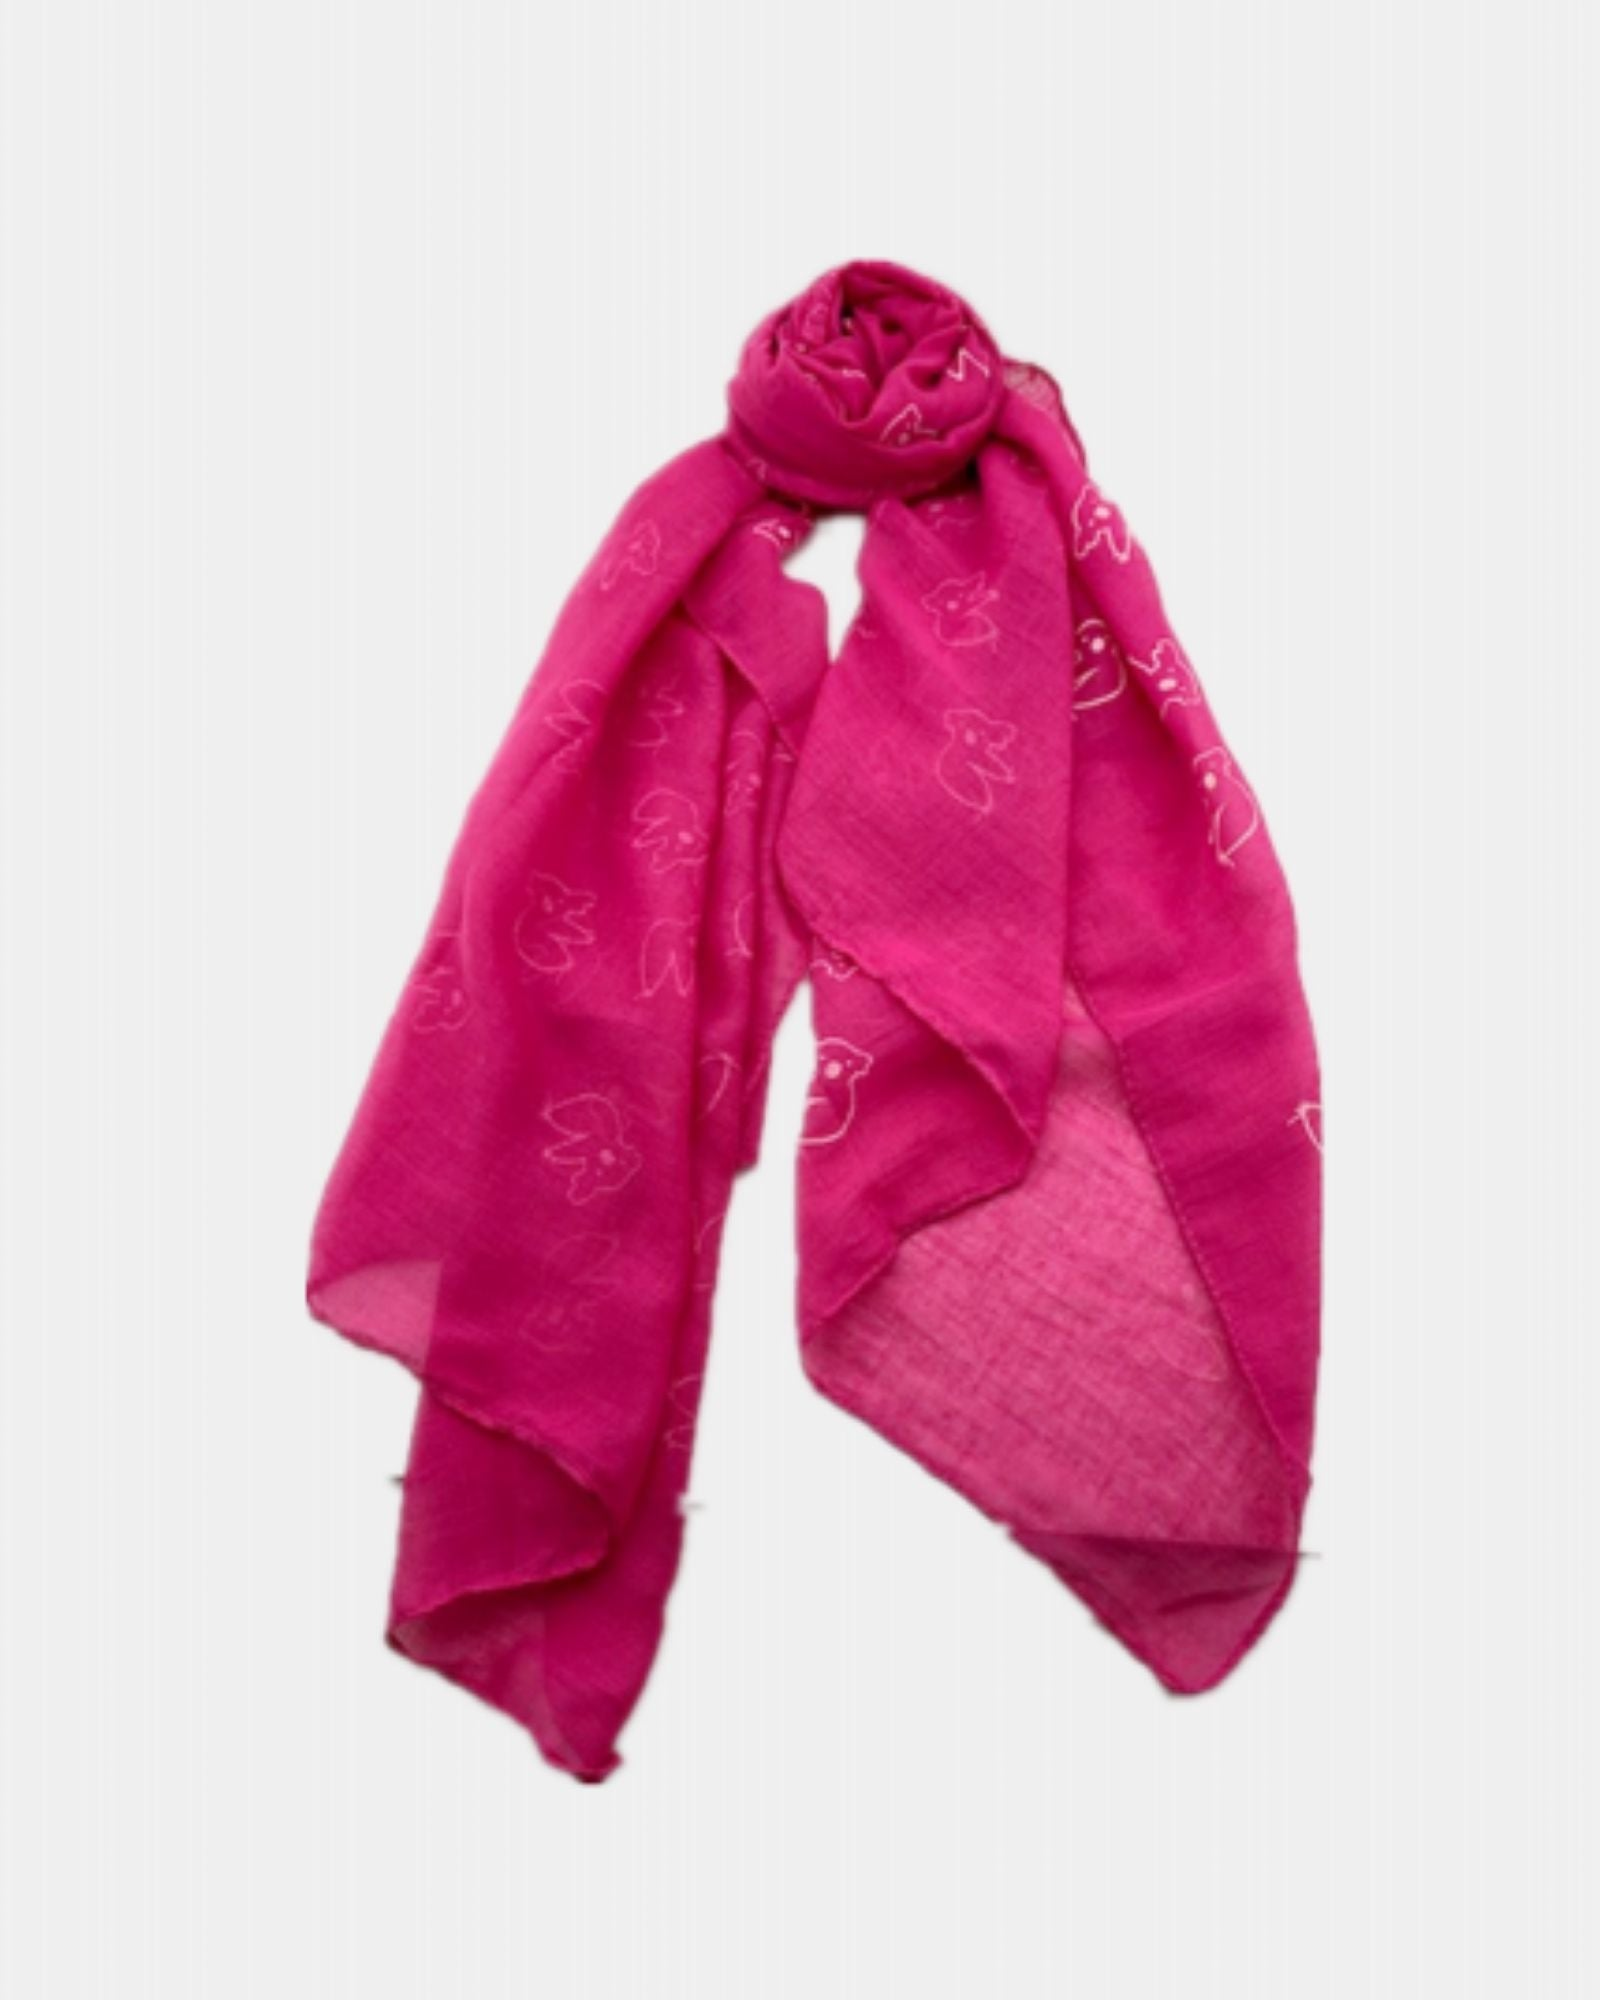 Koala Print Scarf - Hot Pink - 100% Cotton